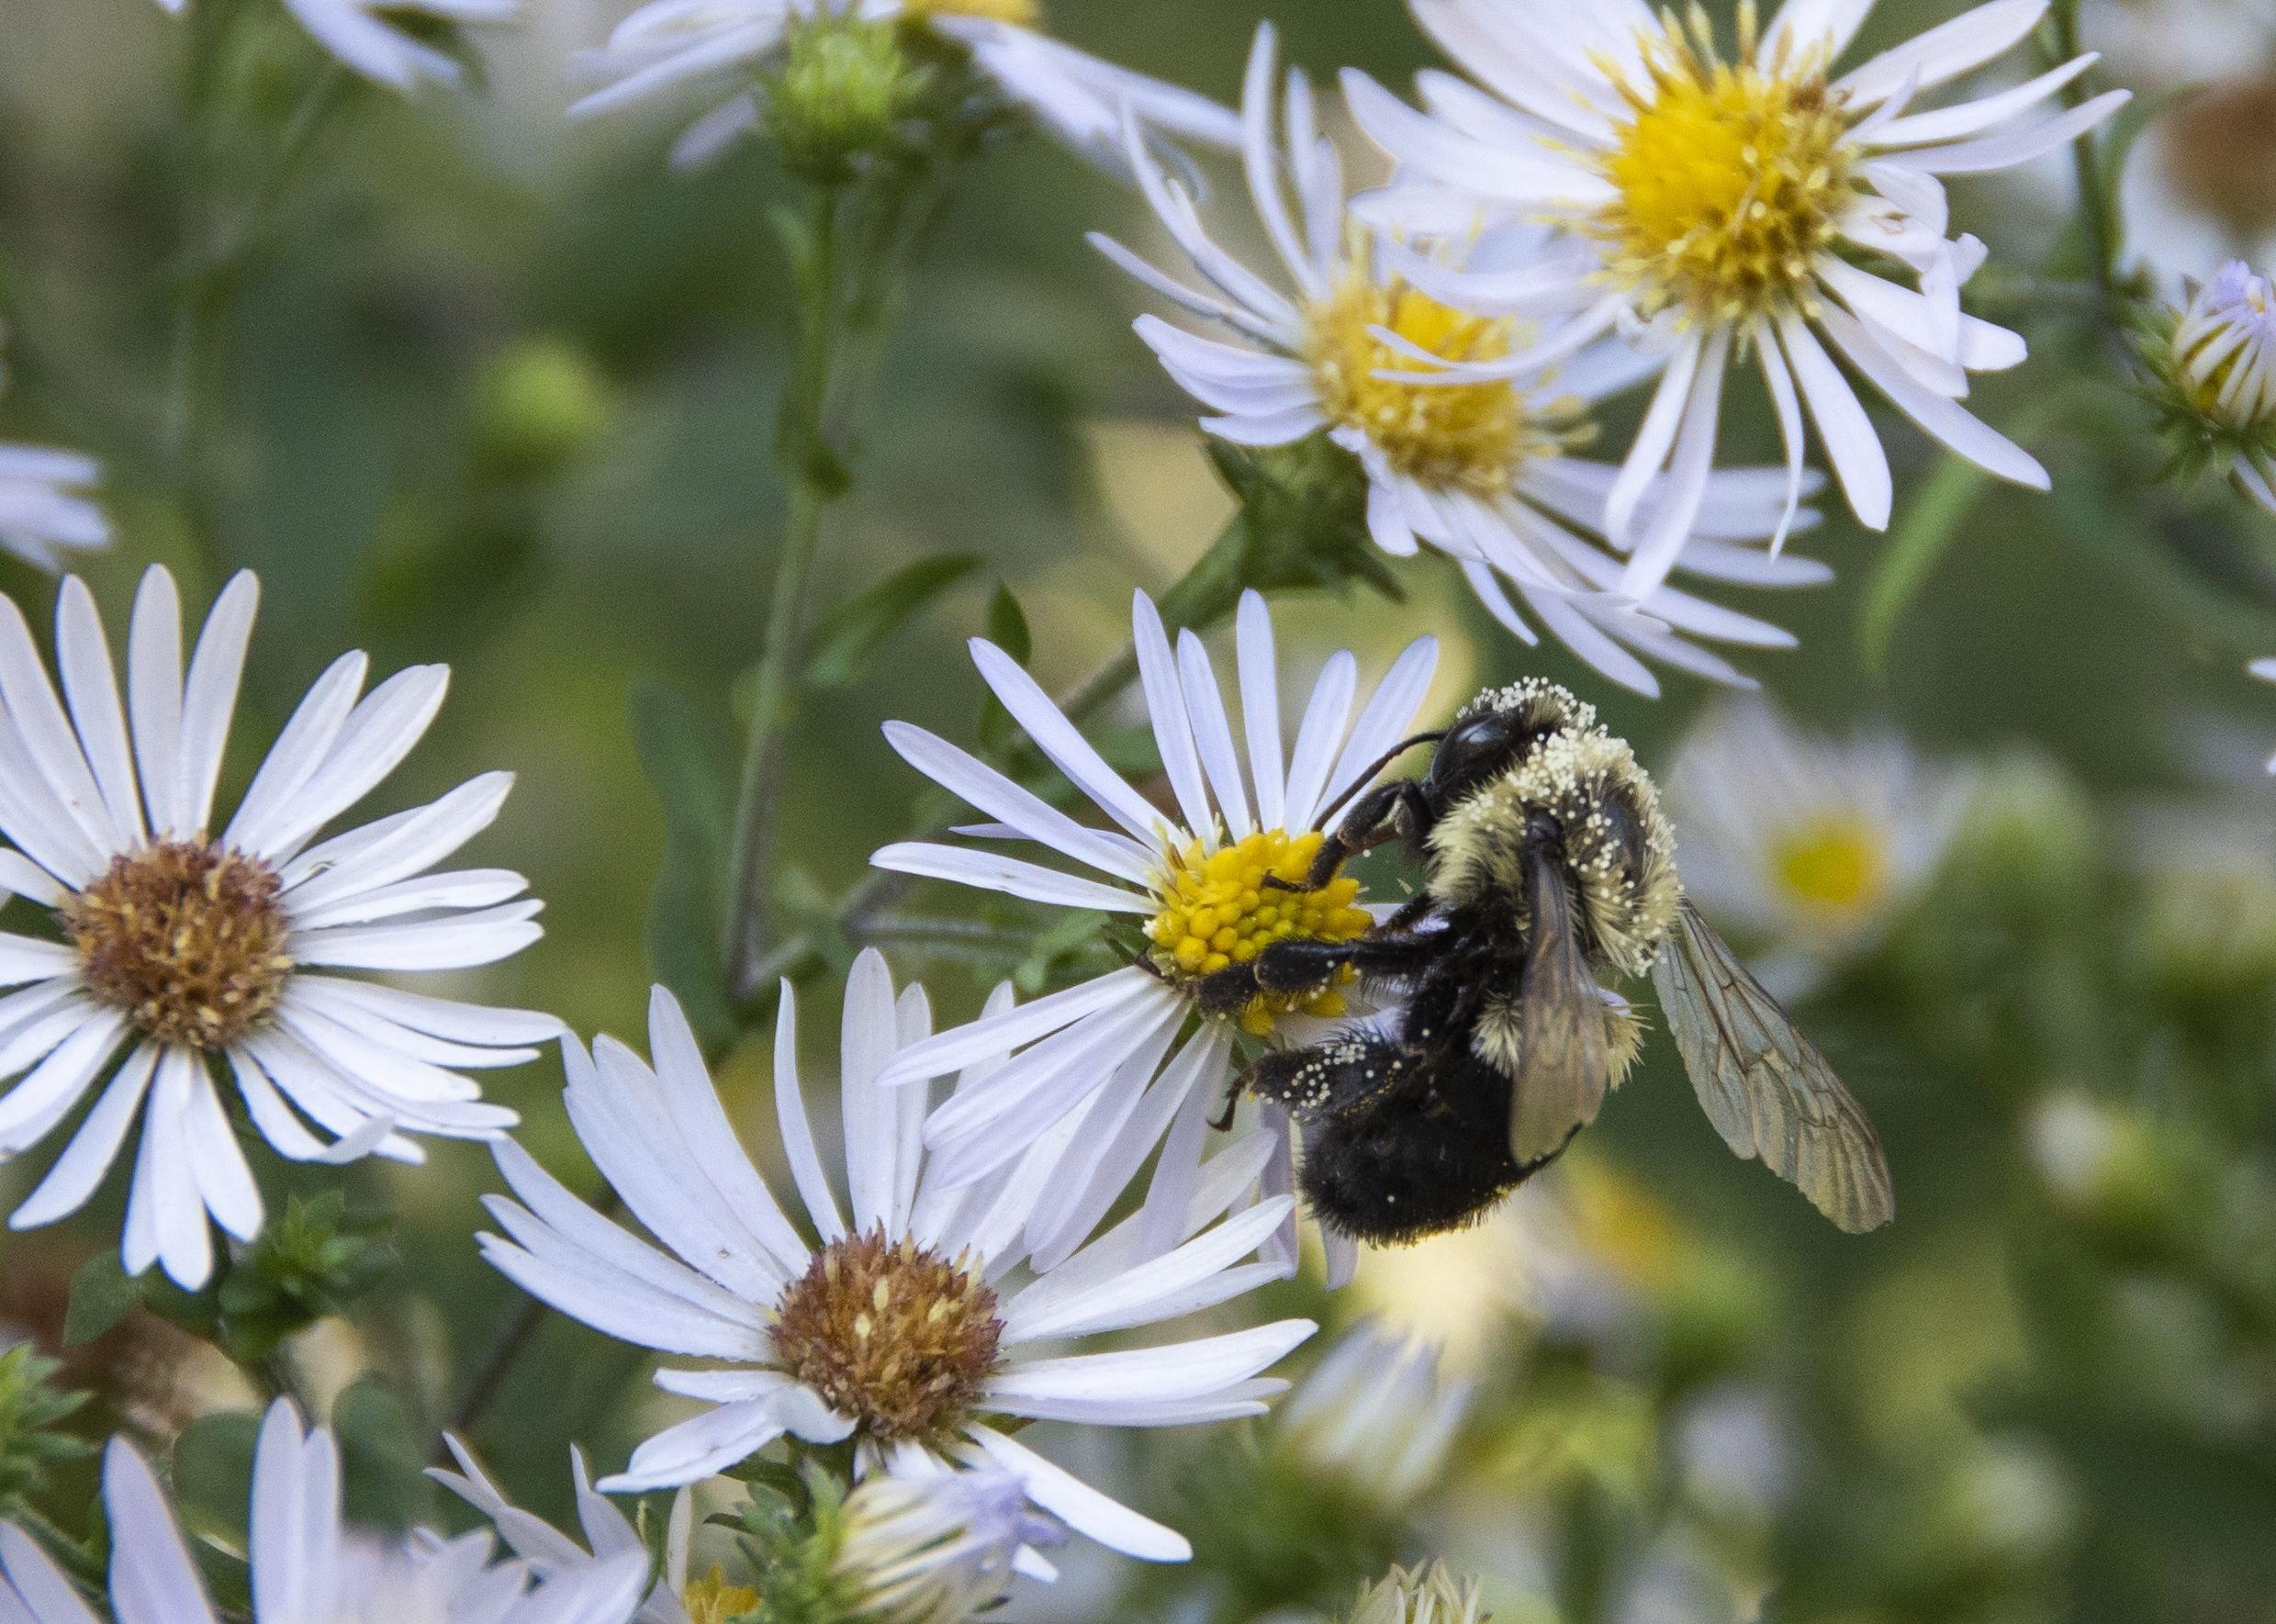 Crooked Stem Aster Aster Prenanthoides Attracts Bumble Bees And Other Small Pollinators Asters Are So Beautiful And Native Plants Clay Soil Lavender Flowers